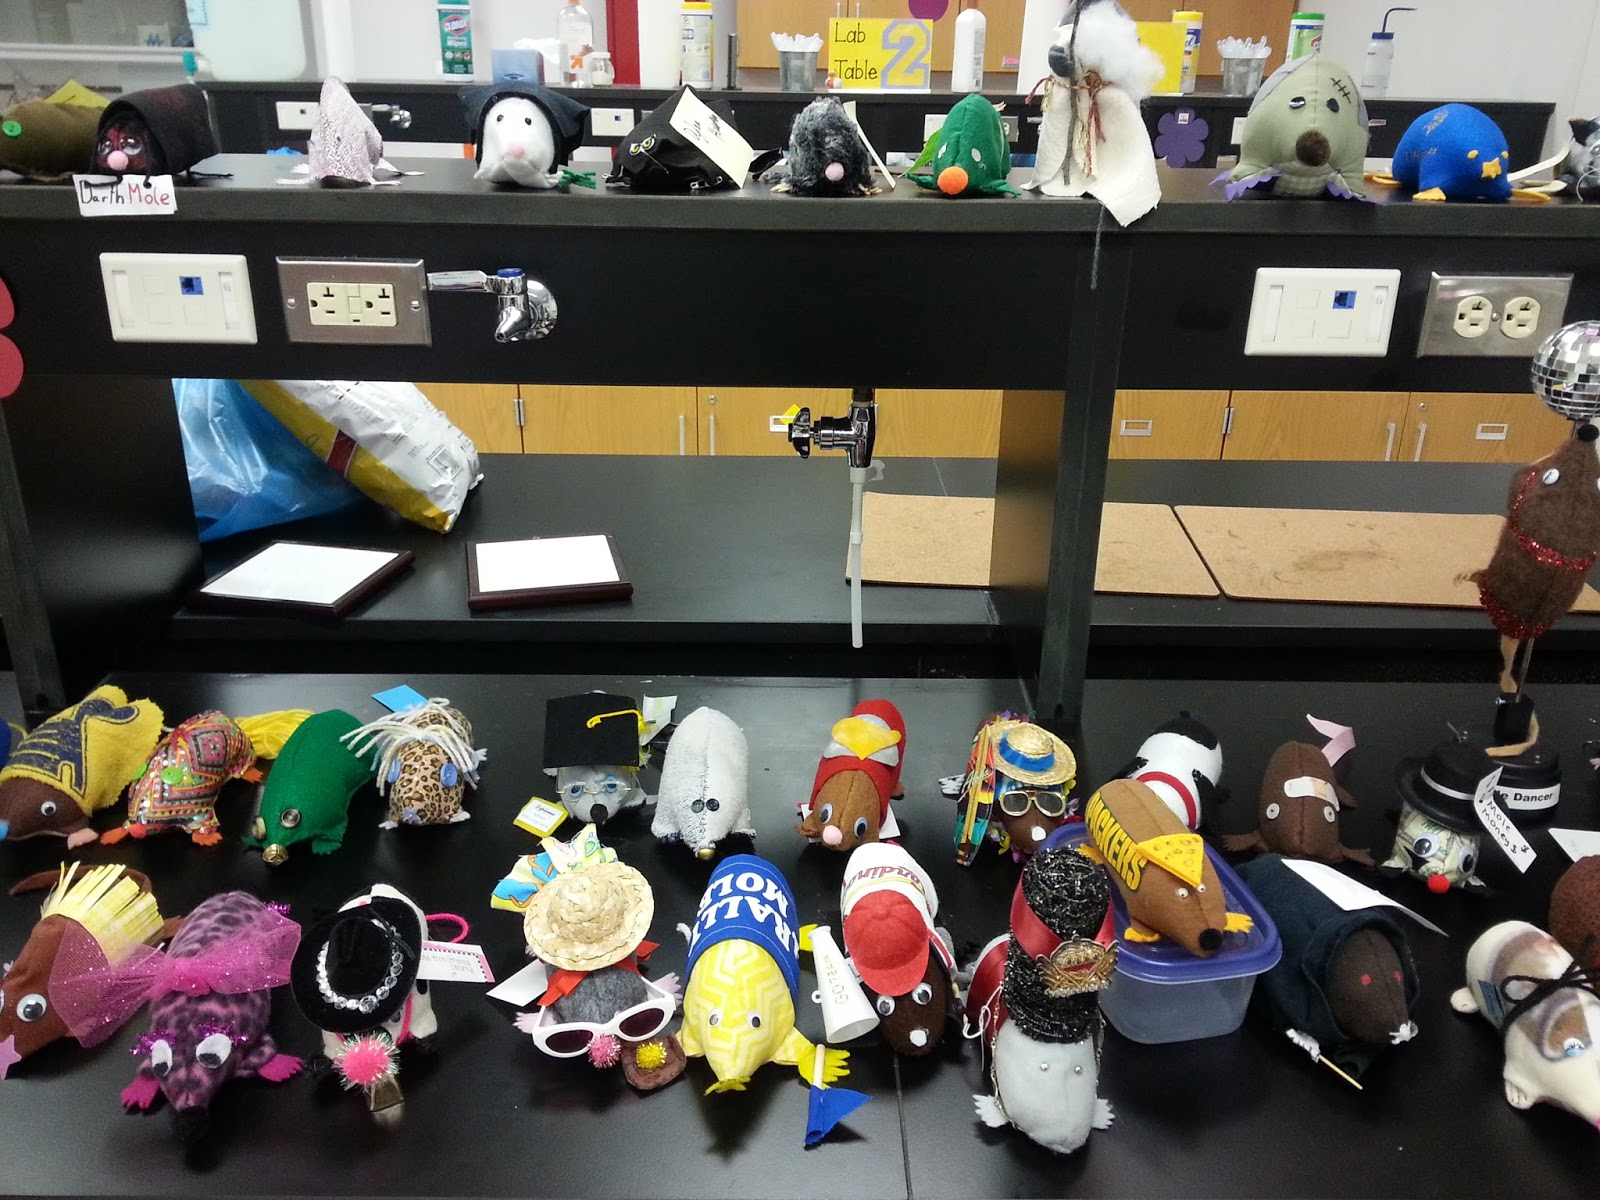 carbrey s chemistry blog mole day there was a mole poll stripper guacamoley sesamole street a party animole whack a mole and more i thought everyone did an awesome job at being